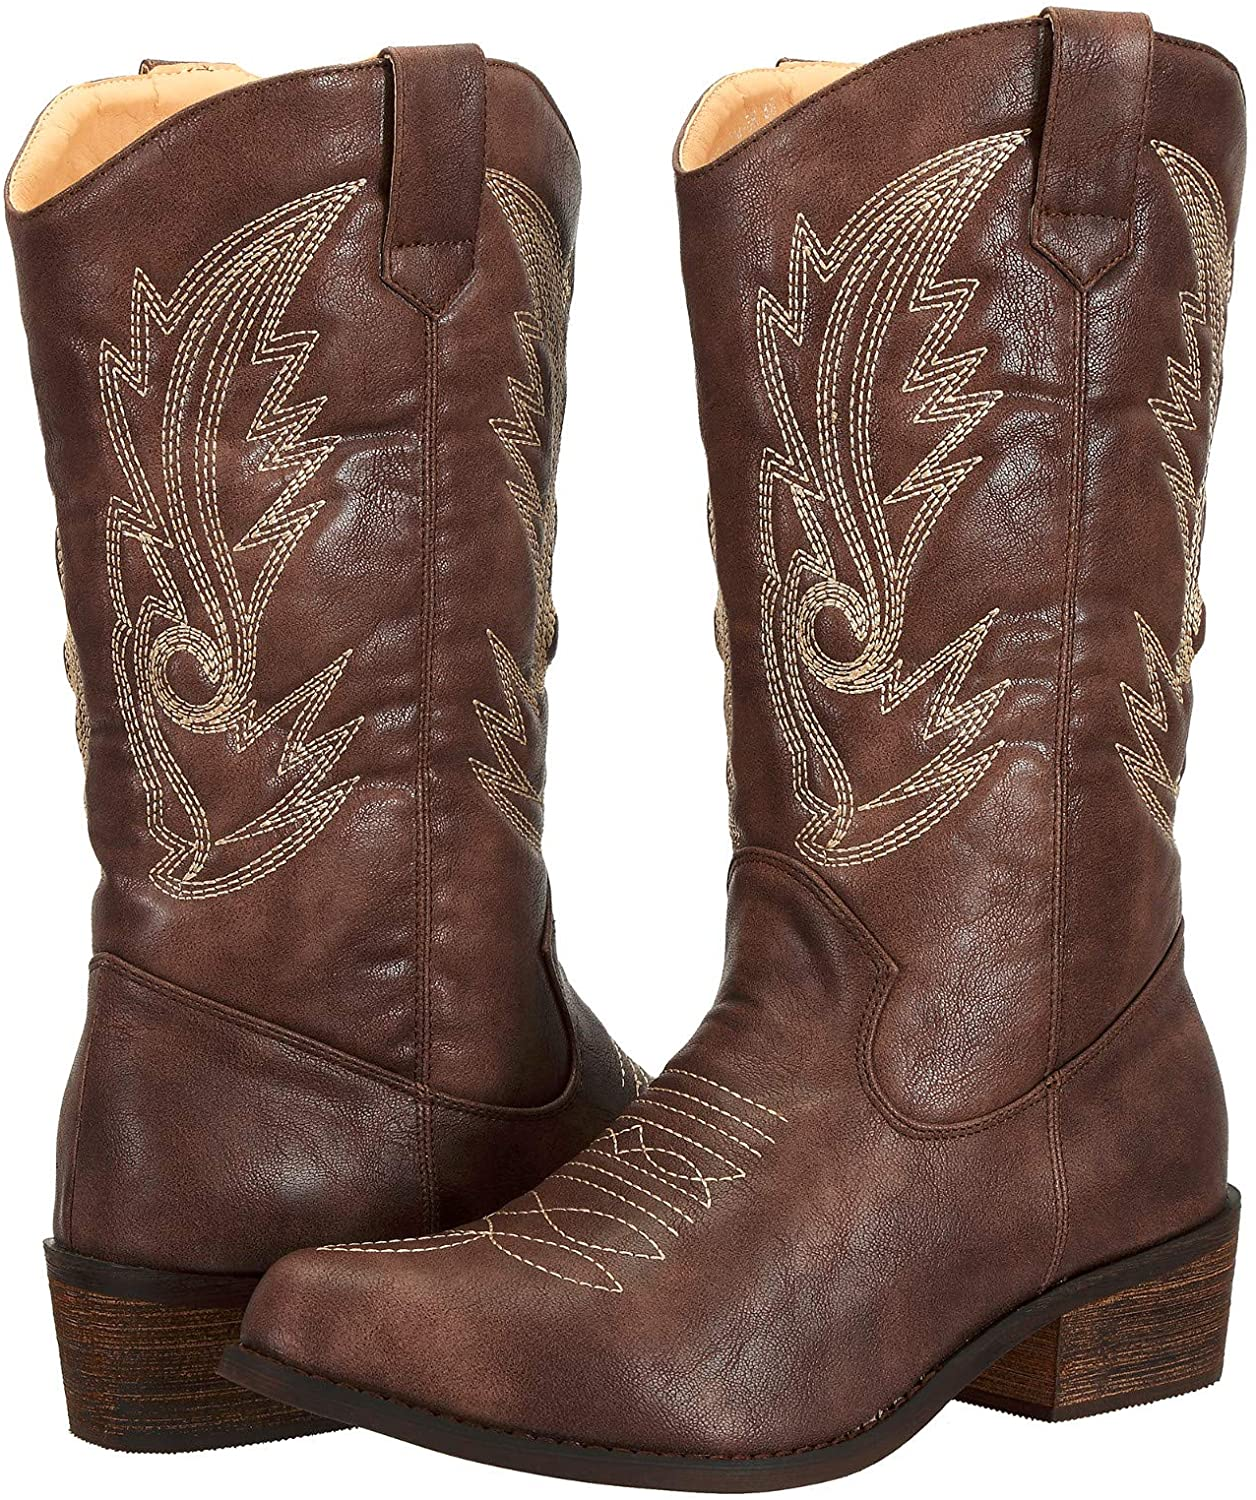 Ladies Cowgirl Cowboy Boots for Women Pointed Toe Pu Leather Western Shoes